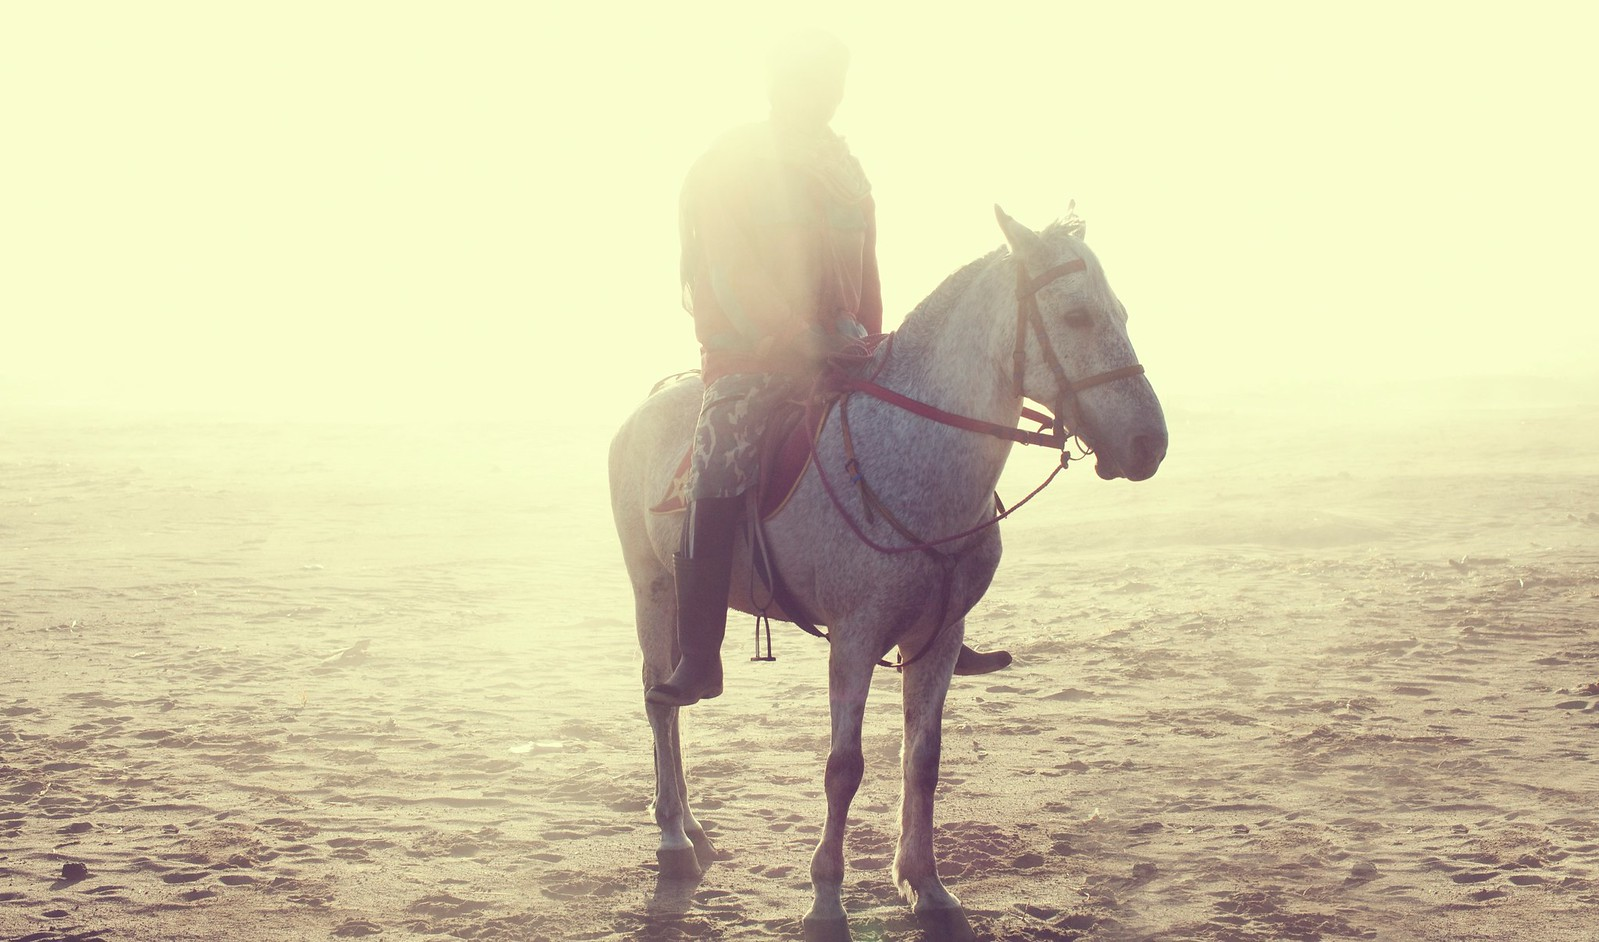 Light Knight - Sand sea, Bromo, Indonesia